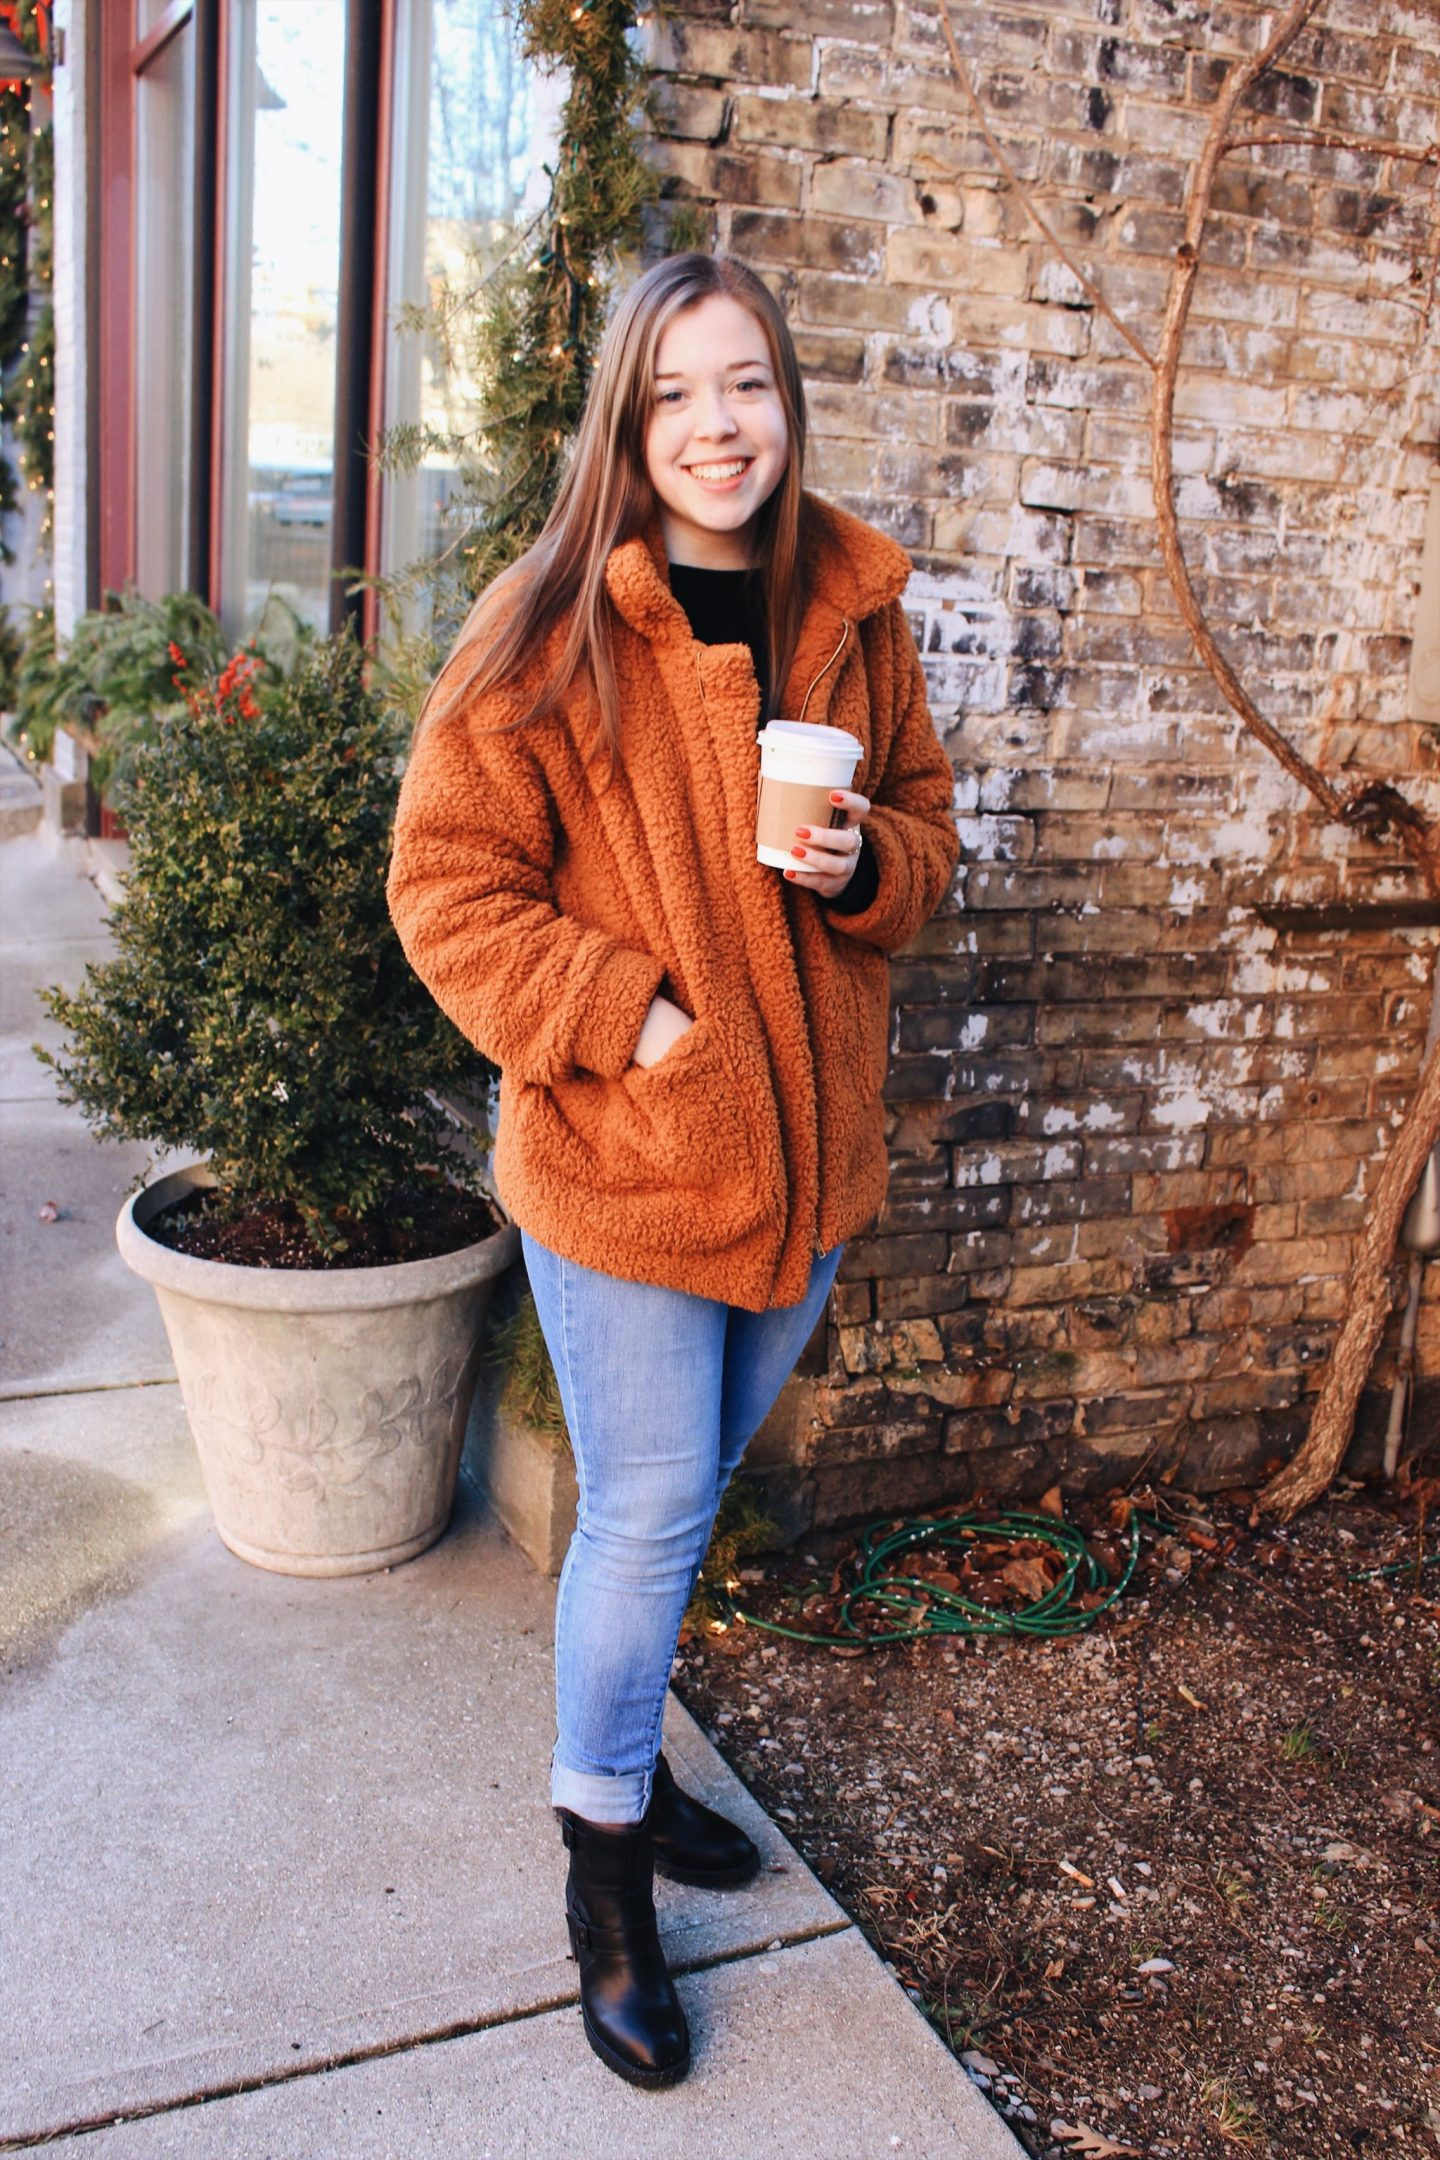 girl standing in front of a brick wall smiling and holding a coffee cup in one hand with her other hand in her coat pocket